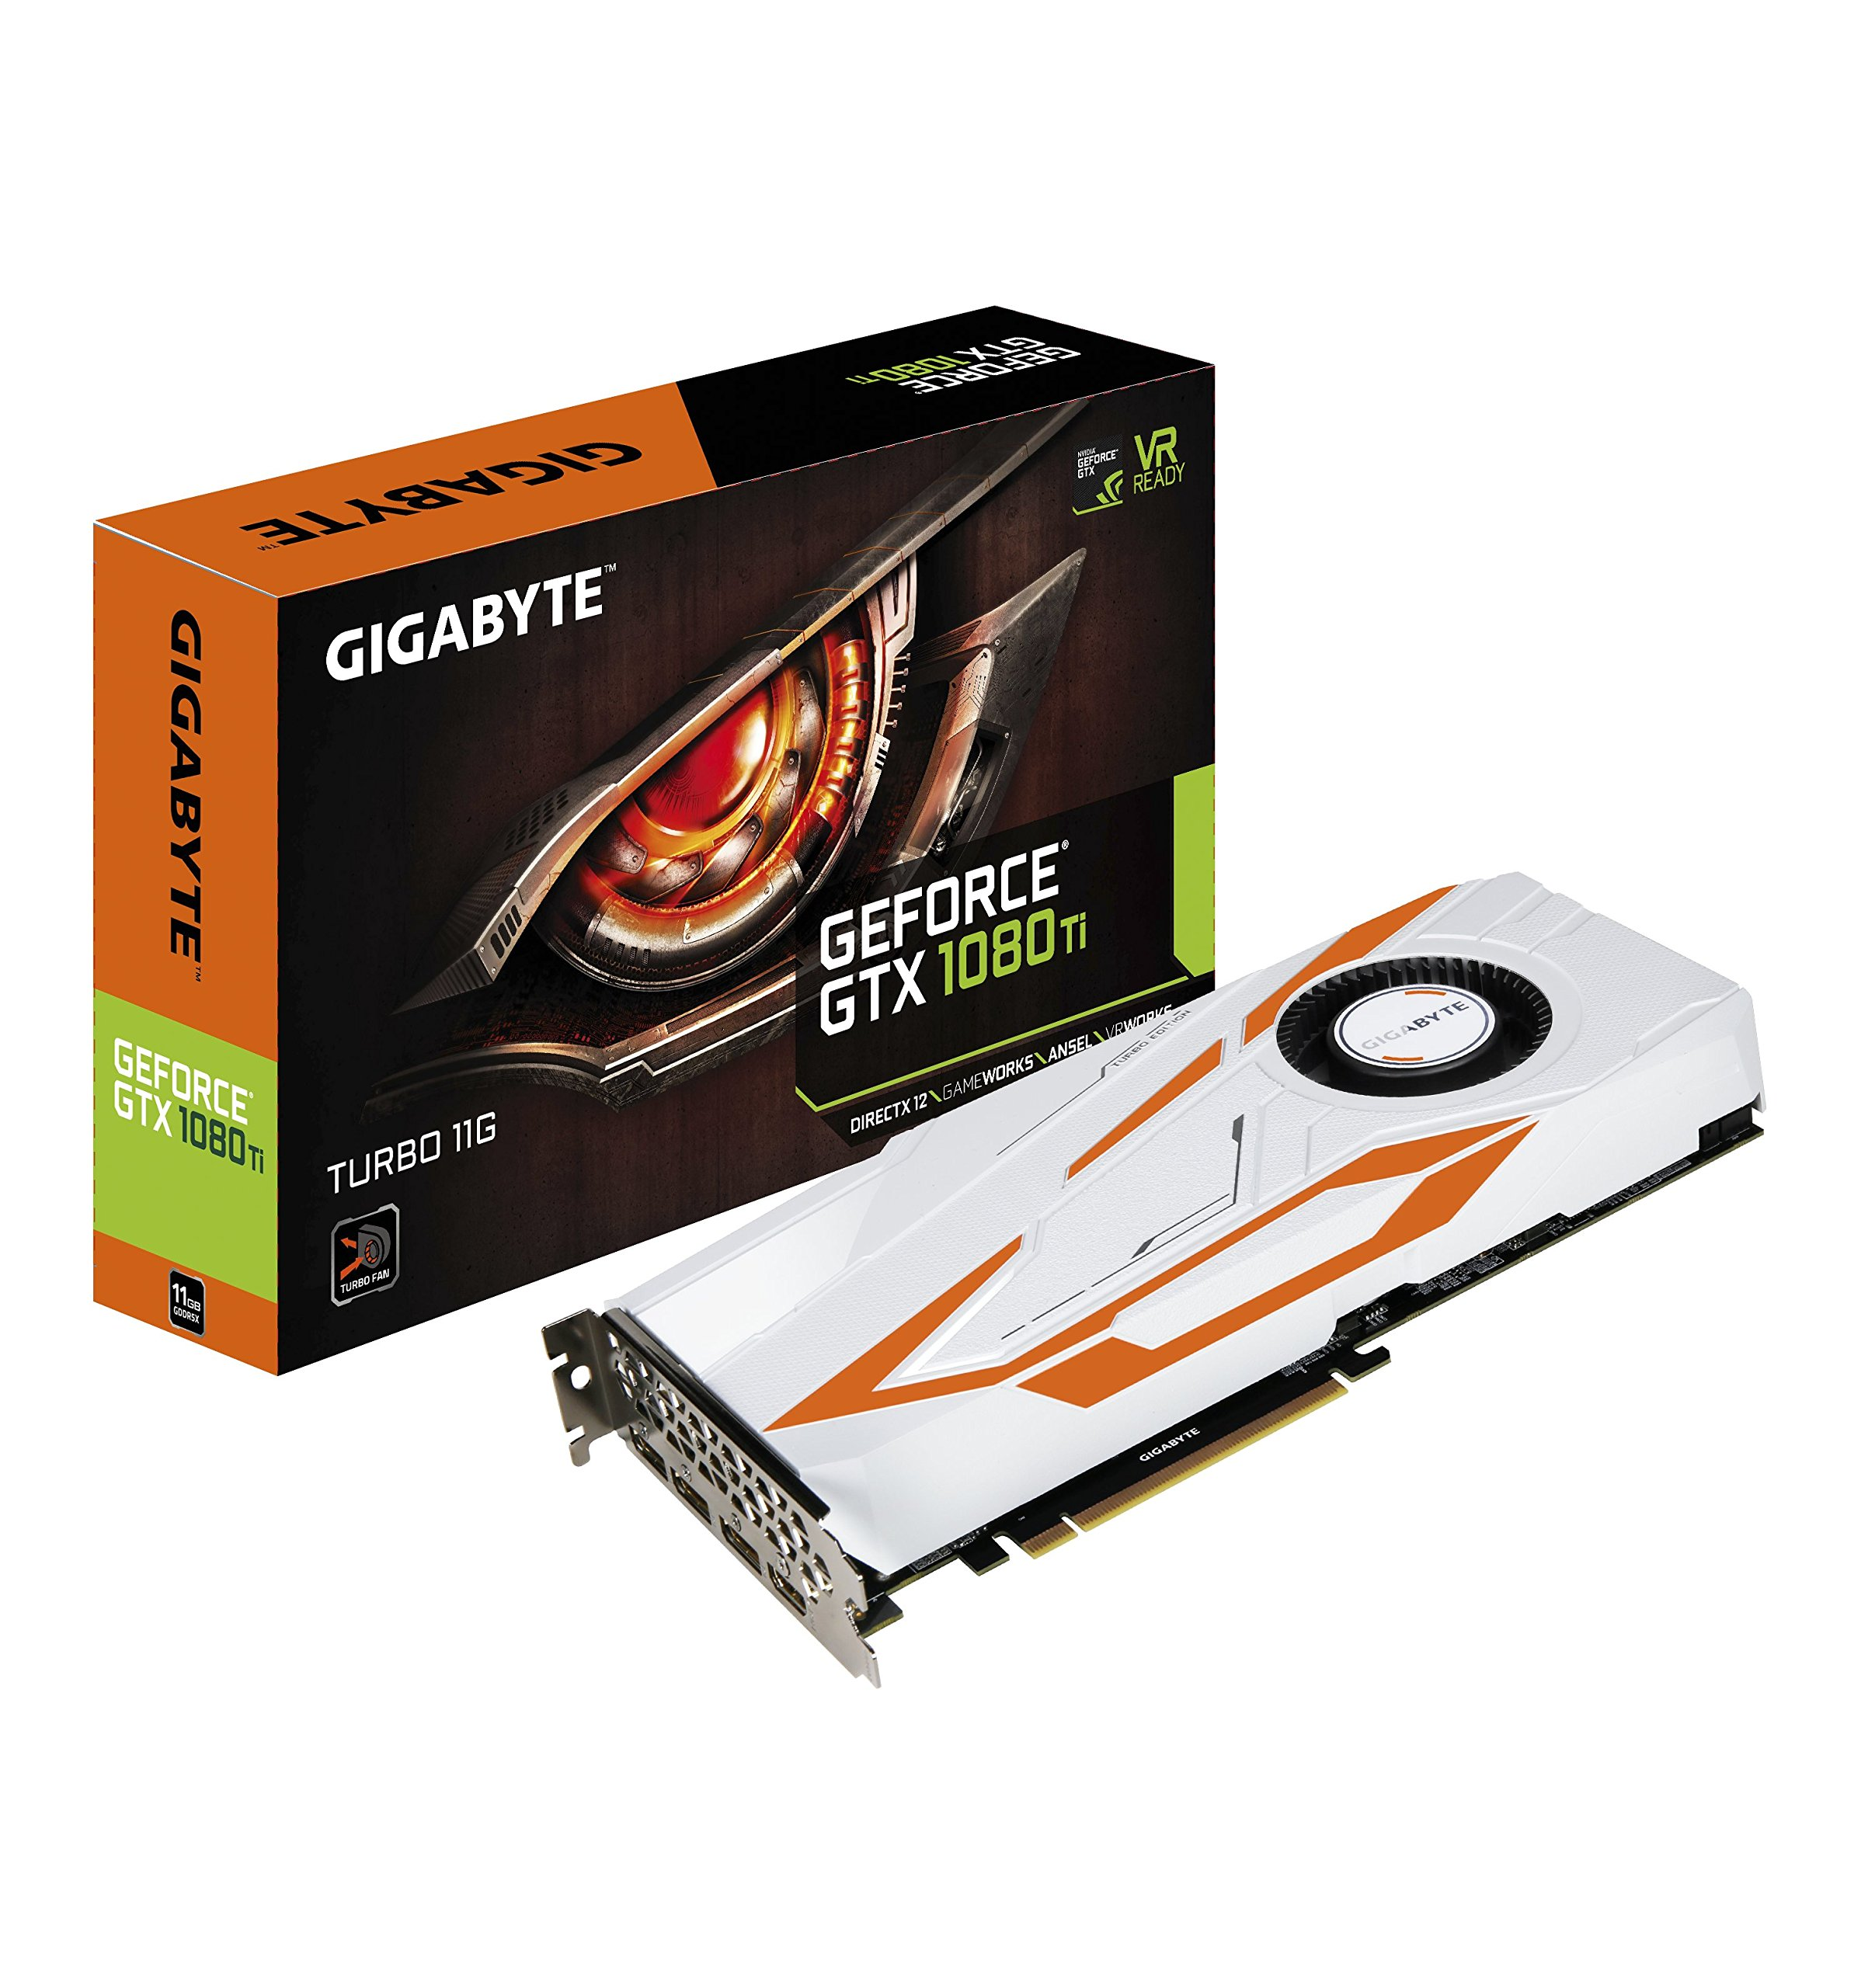 Gigabyte GV-N108TTURBO-11GD AORUS GeForce GTX 1080 Ti Turbo 11G Graphic Cards